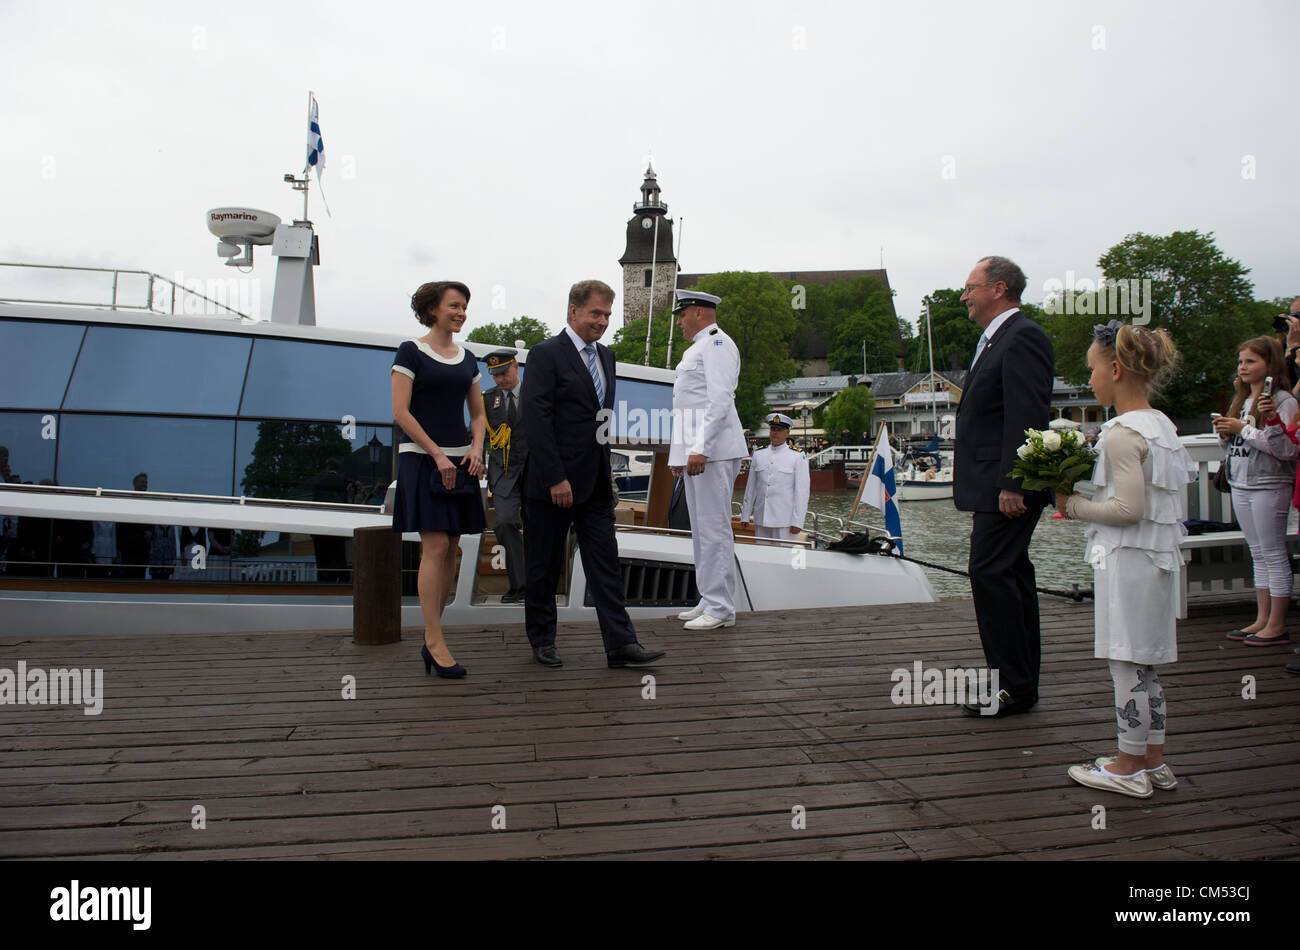 June 16, 2012. Naantali, Finland. President of Finland Sauli Niinistö and his wife Jenni Haukio  are visiting - Stock Image